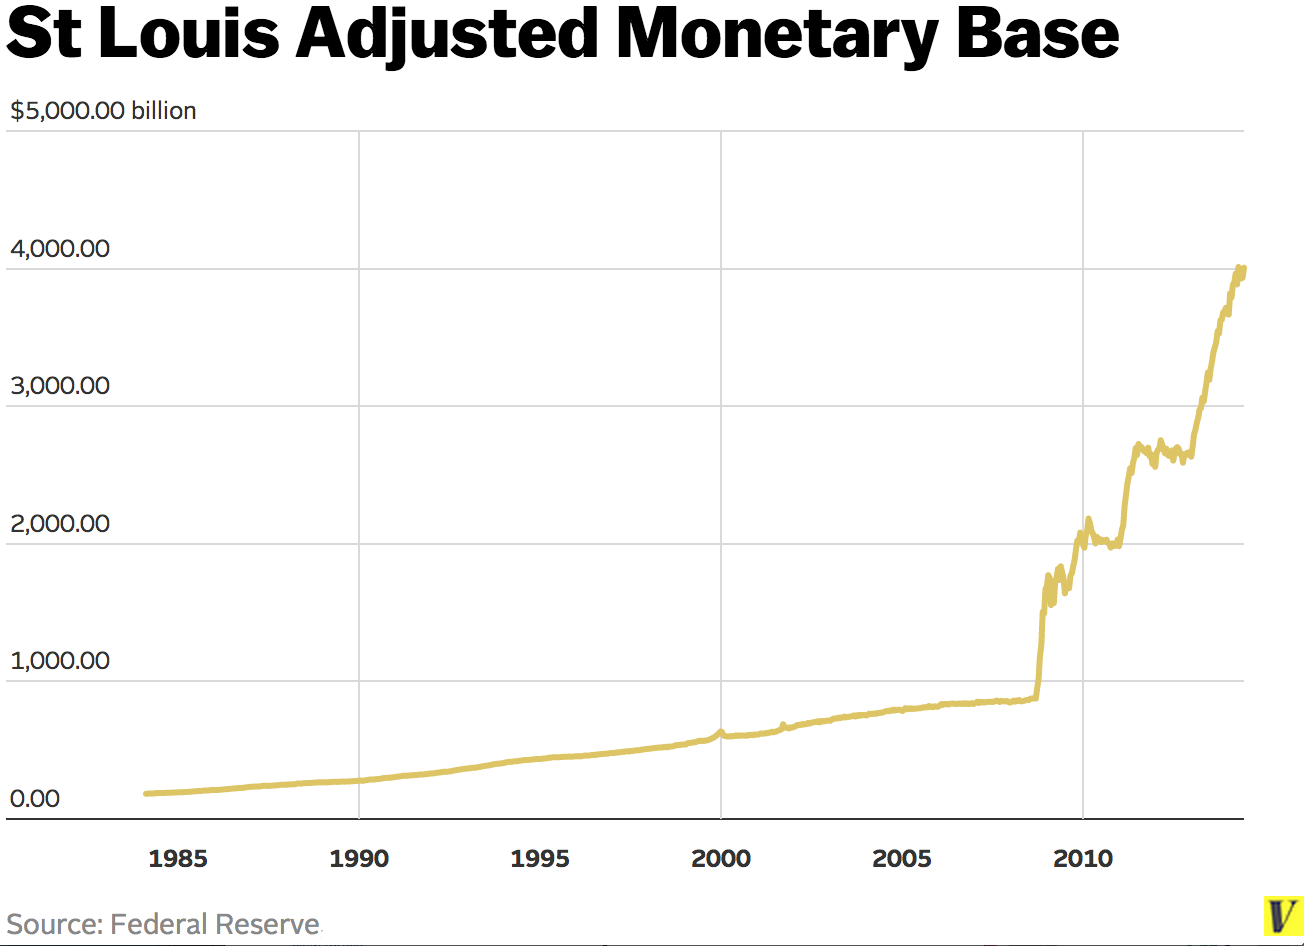 quantitative easing Definition quantitative easing this involves the central bank increasing the money supply and using these electronically created funds to buy government bonds or other securities quantitative easing is a form of expansionary monetary policy it is usually used in a liquidity trap – when base .